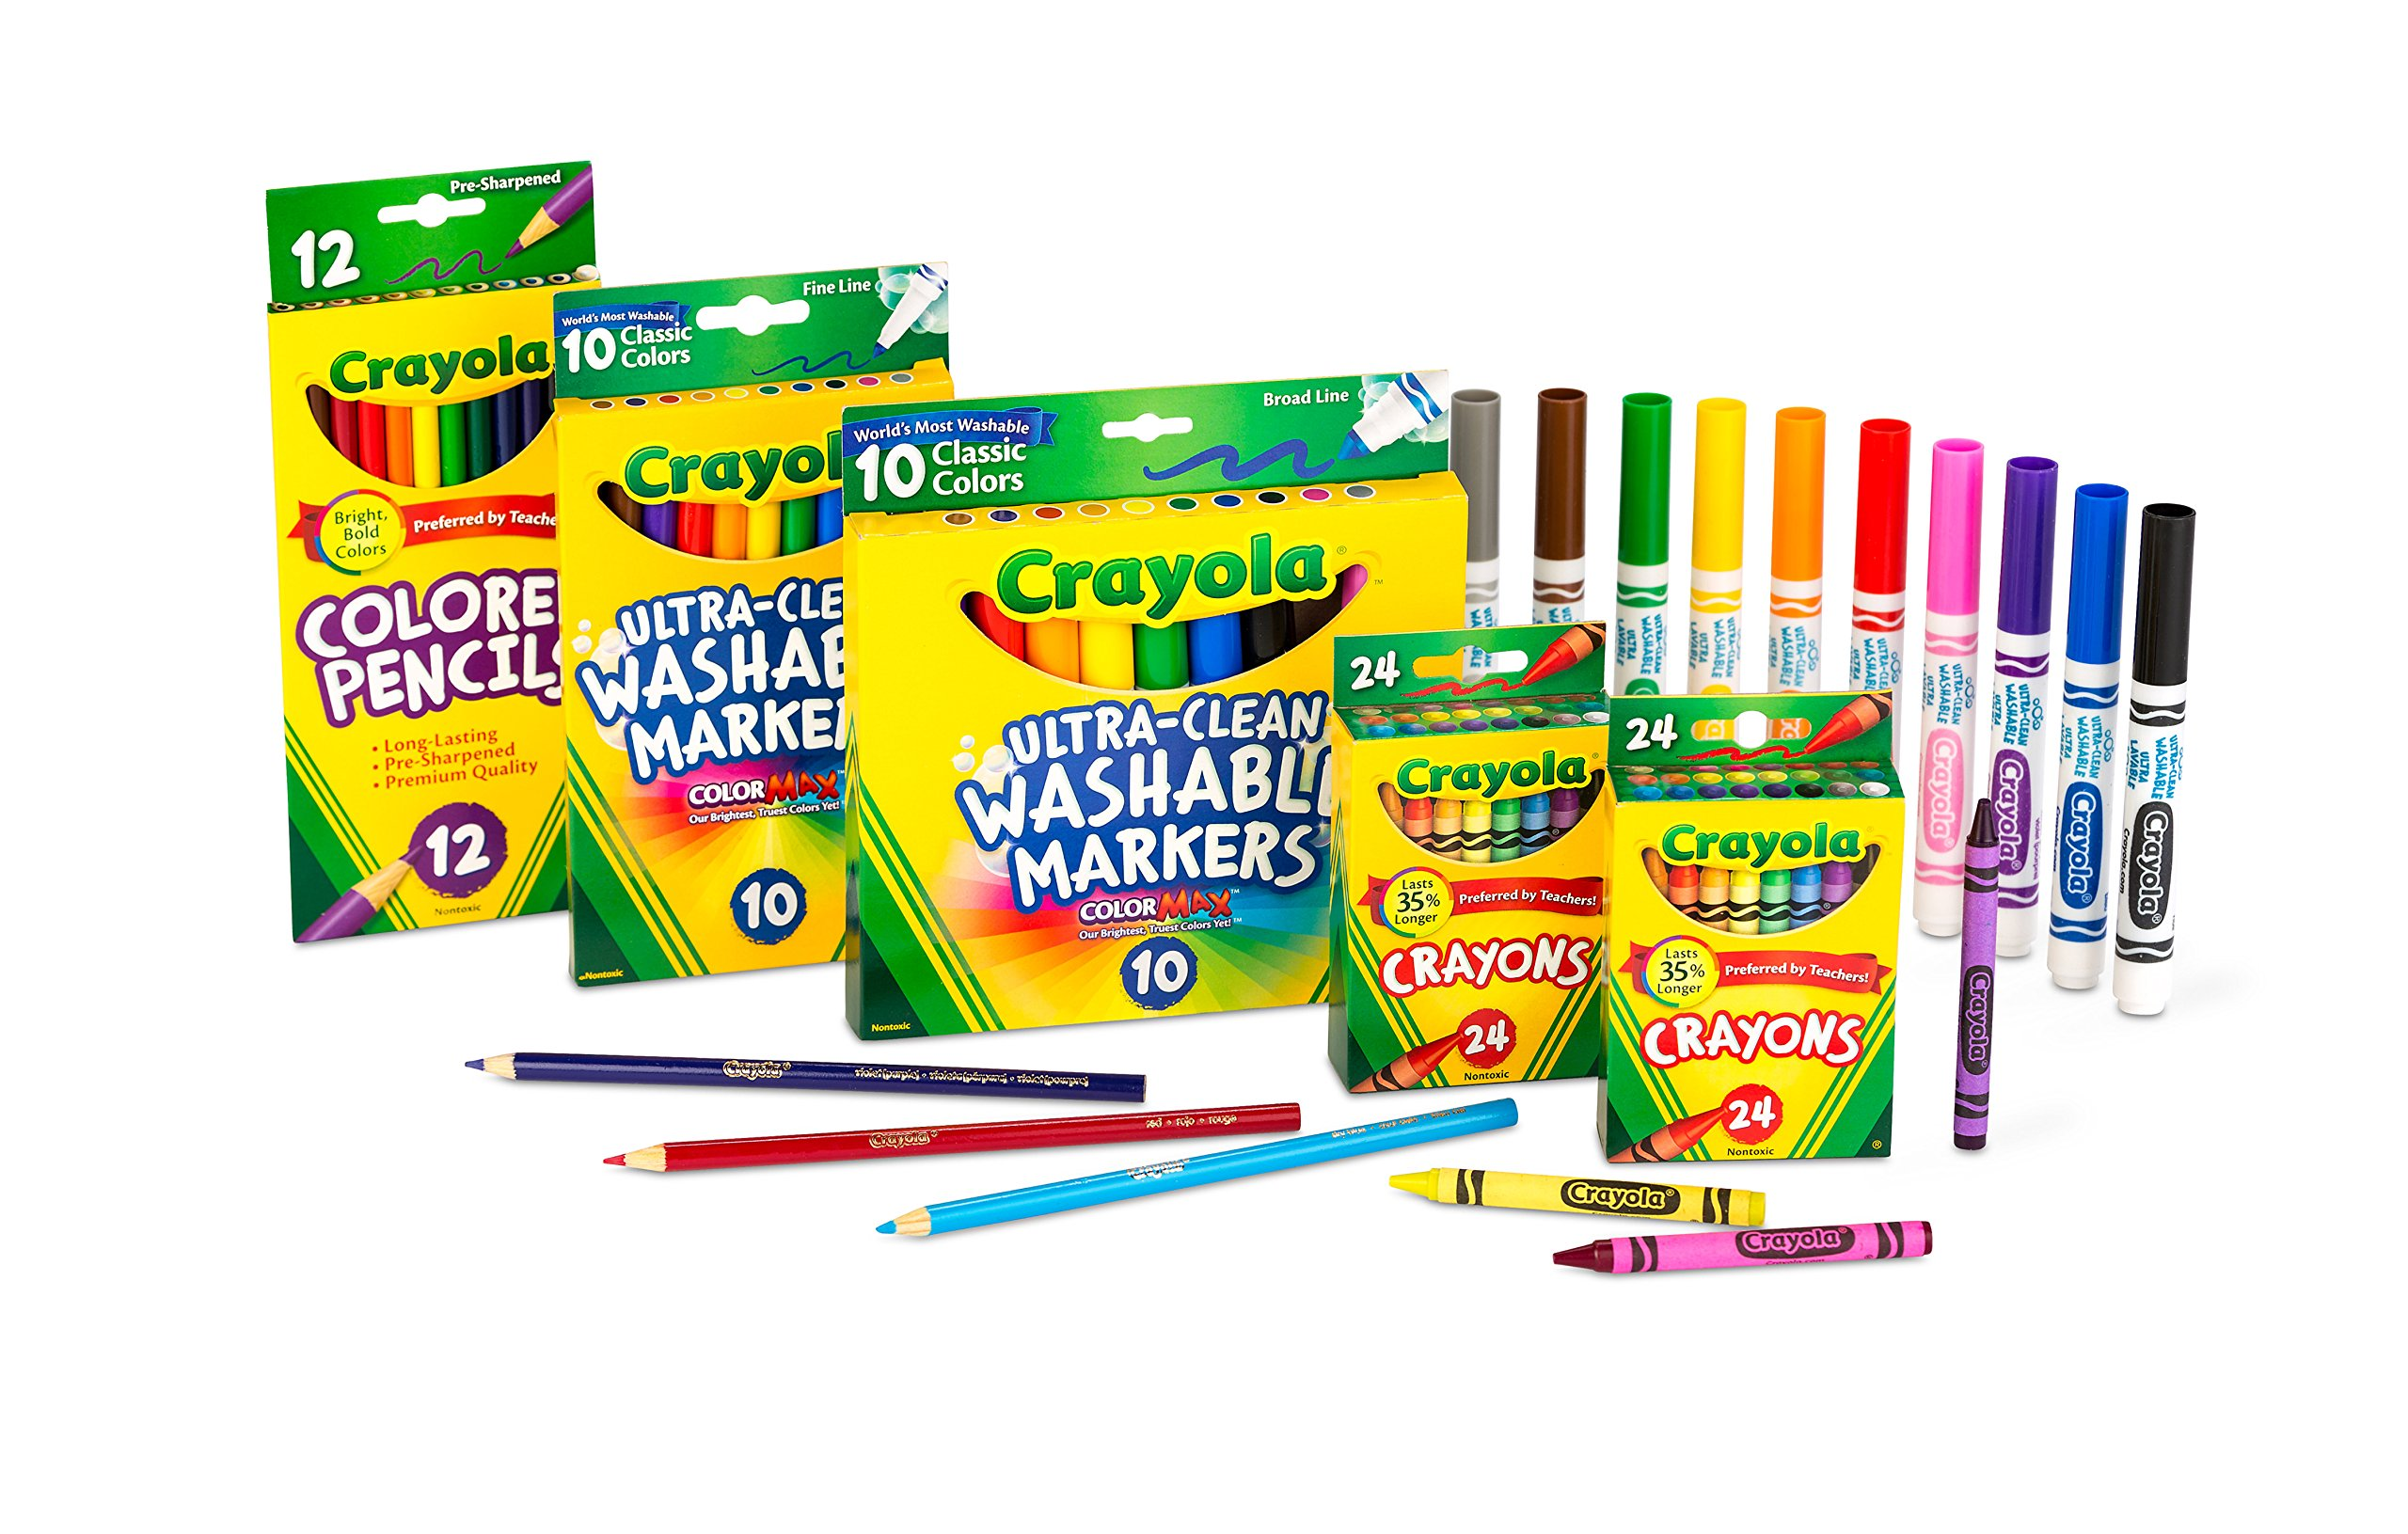 Crayola Back To School Supplies for Girls & Boys, Amazon Exclusive Art Set, 80Piece by Crayola